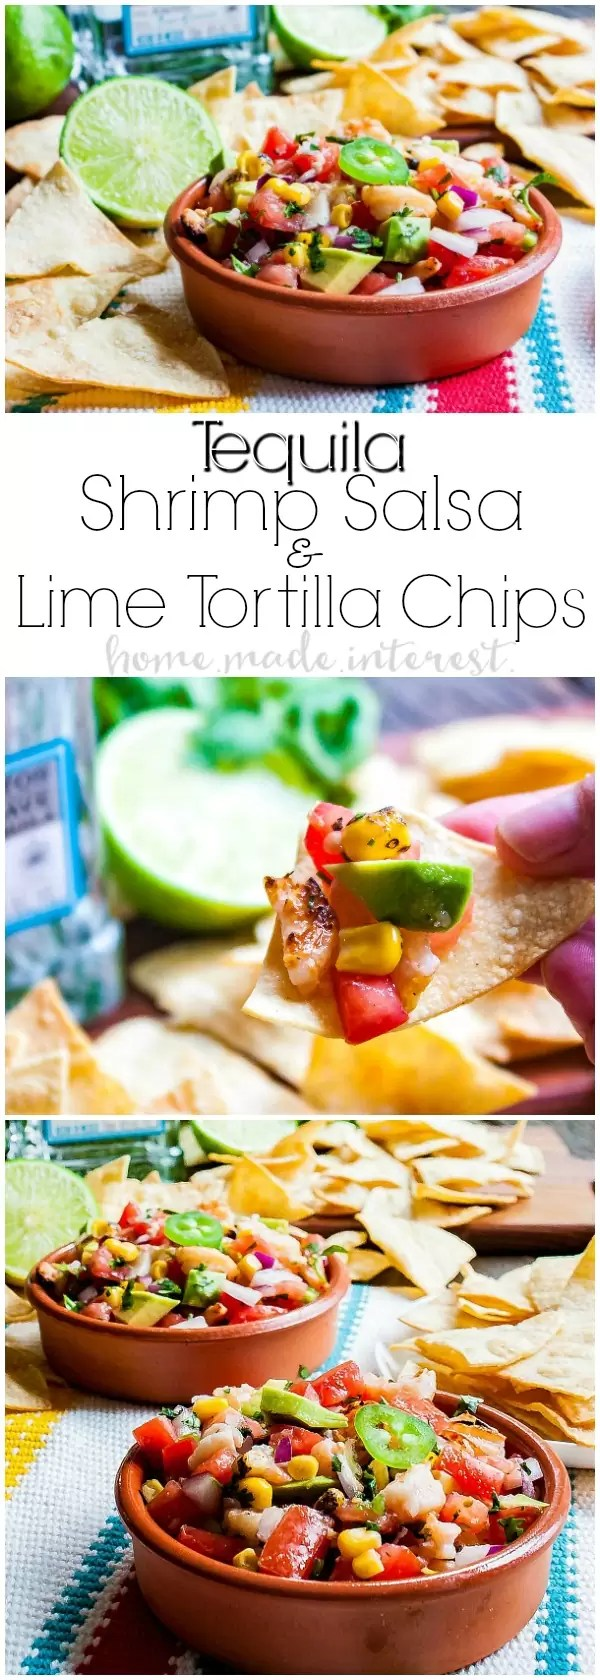 Tequila Shrimp Salsa with Tequila Lime Chips | This fresh salsa with grilled tequila shrimp is a perfect appetizer recipe for Cinco de Mayo. Tequila Shrimp Salsa with Tequila Lime Chips is made with fresh tomatoes, onions, jalapenos and cilantro tossed with grilled tequila shrimp. If you're looking for a salsa recipe for your Cinco de Mayo party you'll love this homemade salsa recipe!